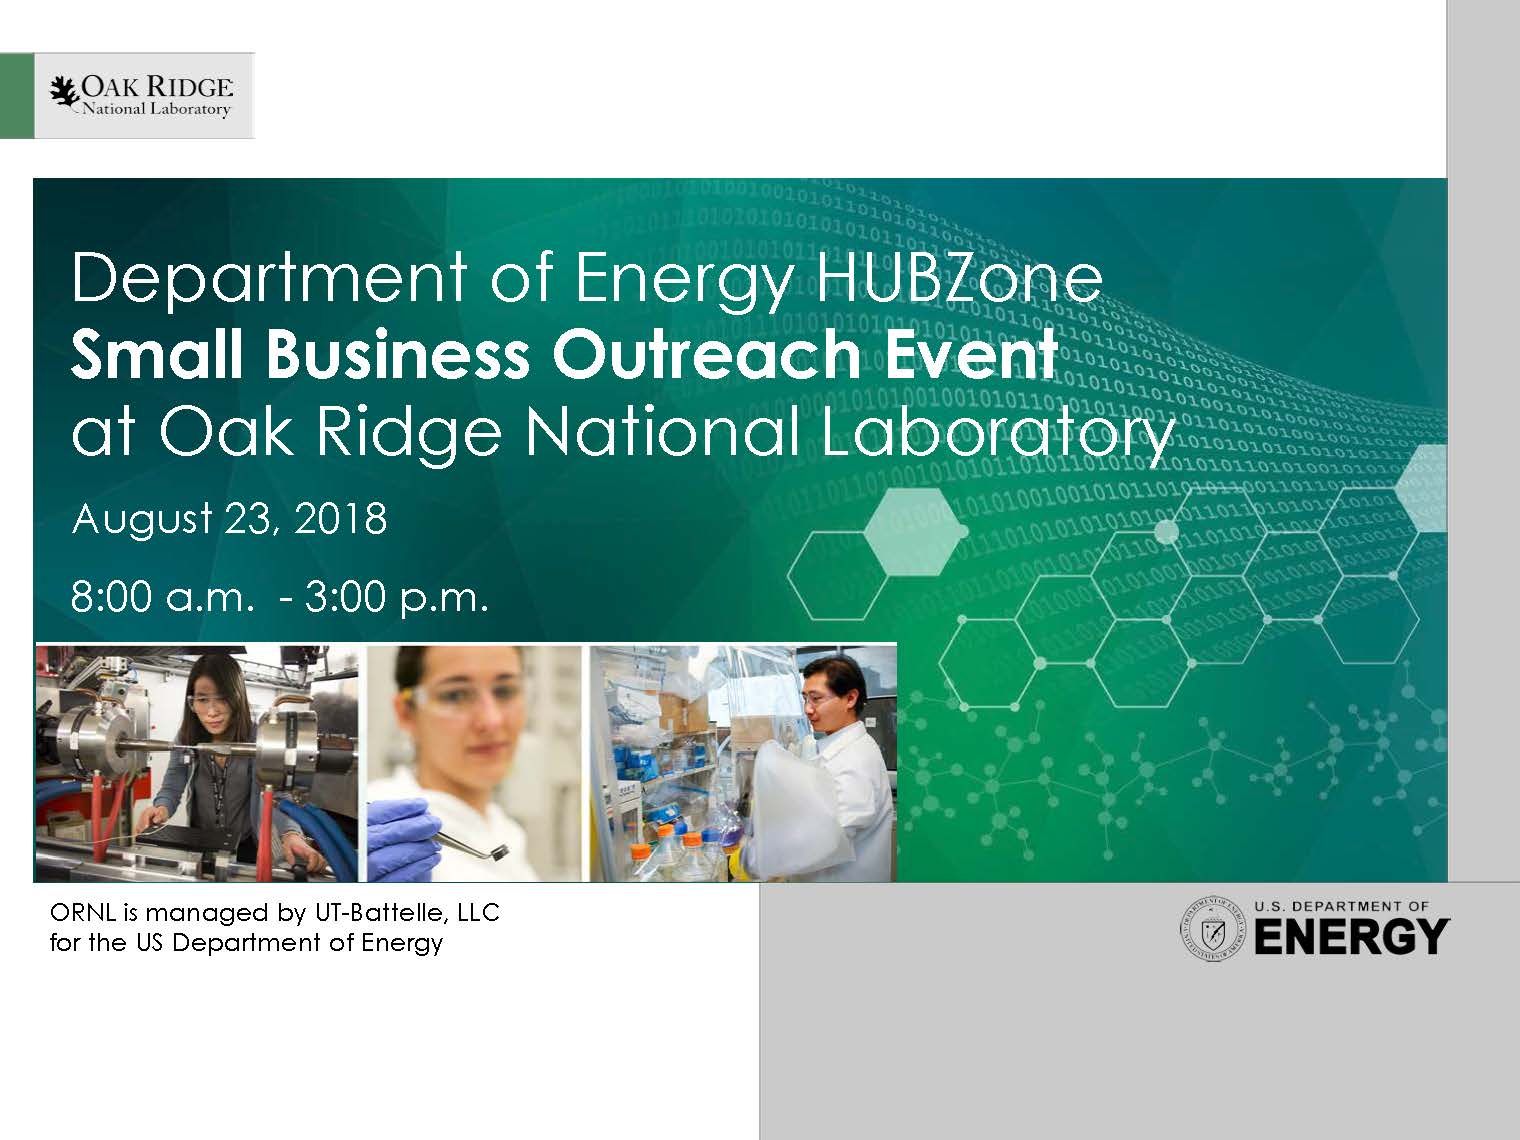 DOE HUBZone Small Business Outreach at ORNL